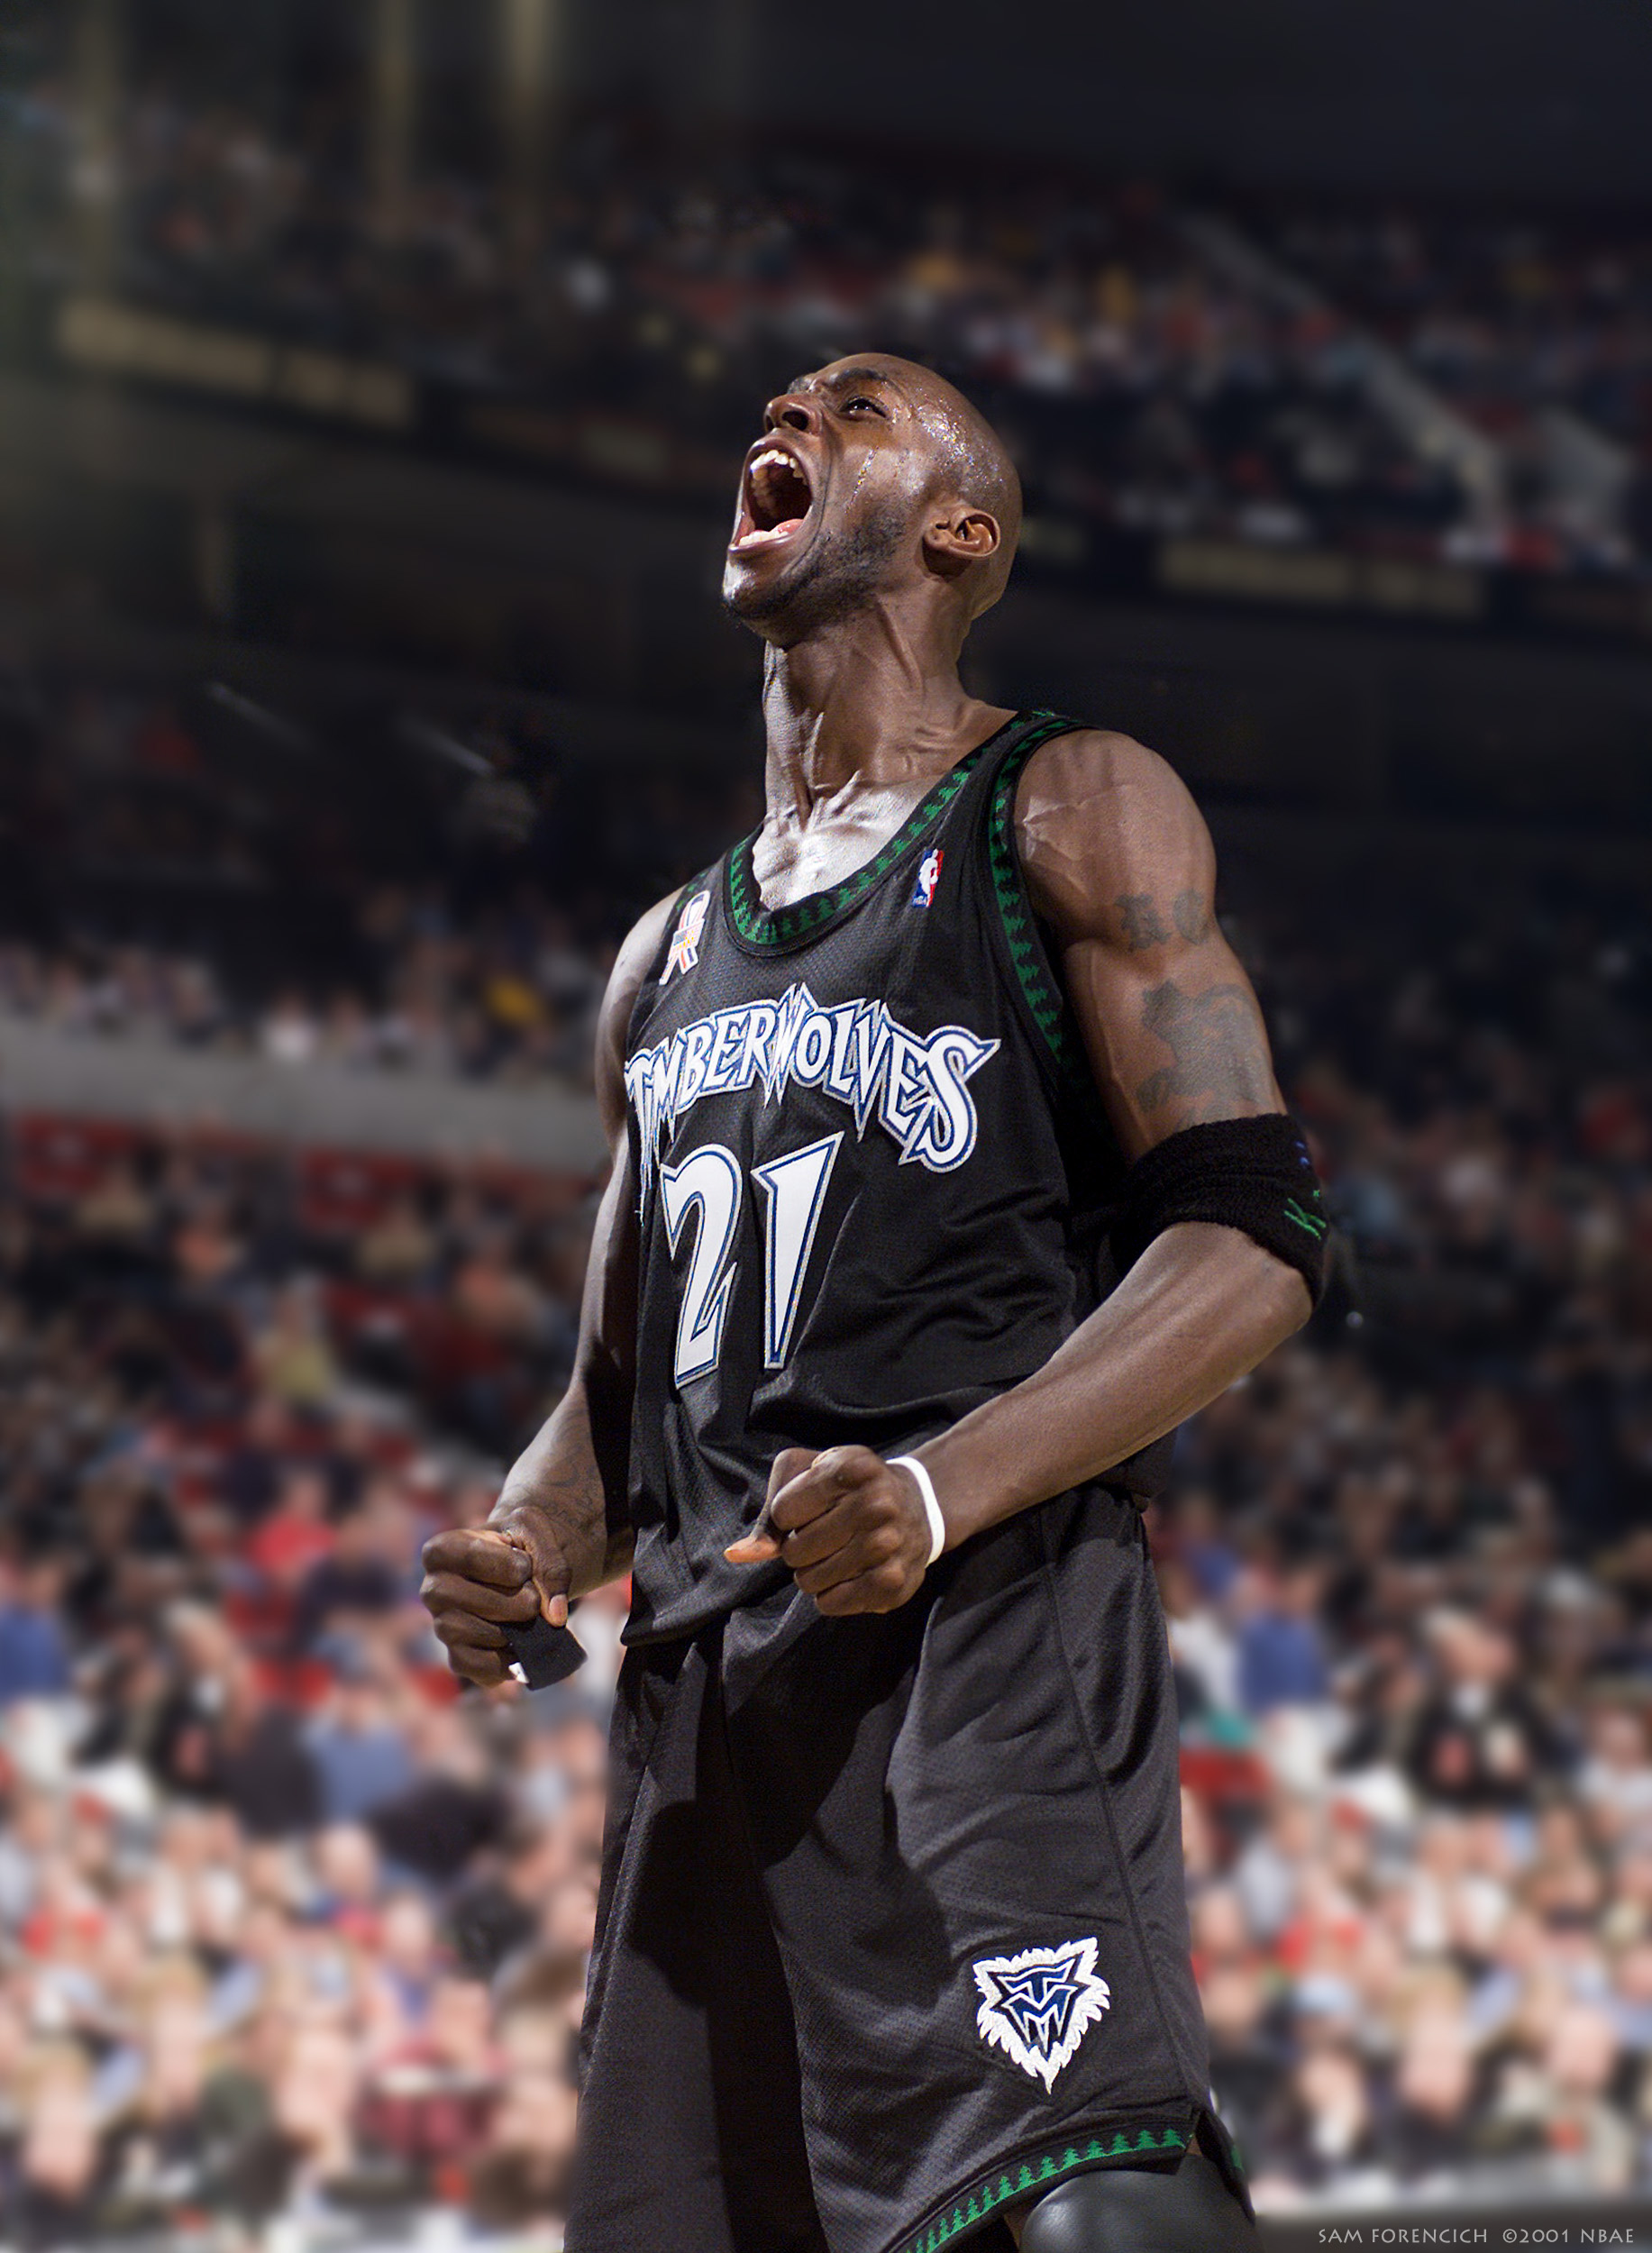 Portland, OR - Kevin Garnett #21 of the Minnesota Timberwolves reacts after a tough shot against the Portland Trail Blazers at the Rose Garden in Portland, Oregon. Digtal 35mm, arena strobe lighting.  Sam Forencich ©2001 NBAE